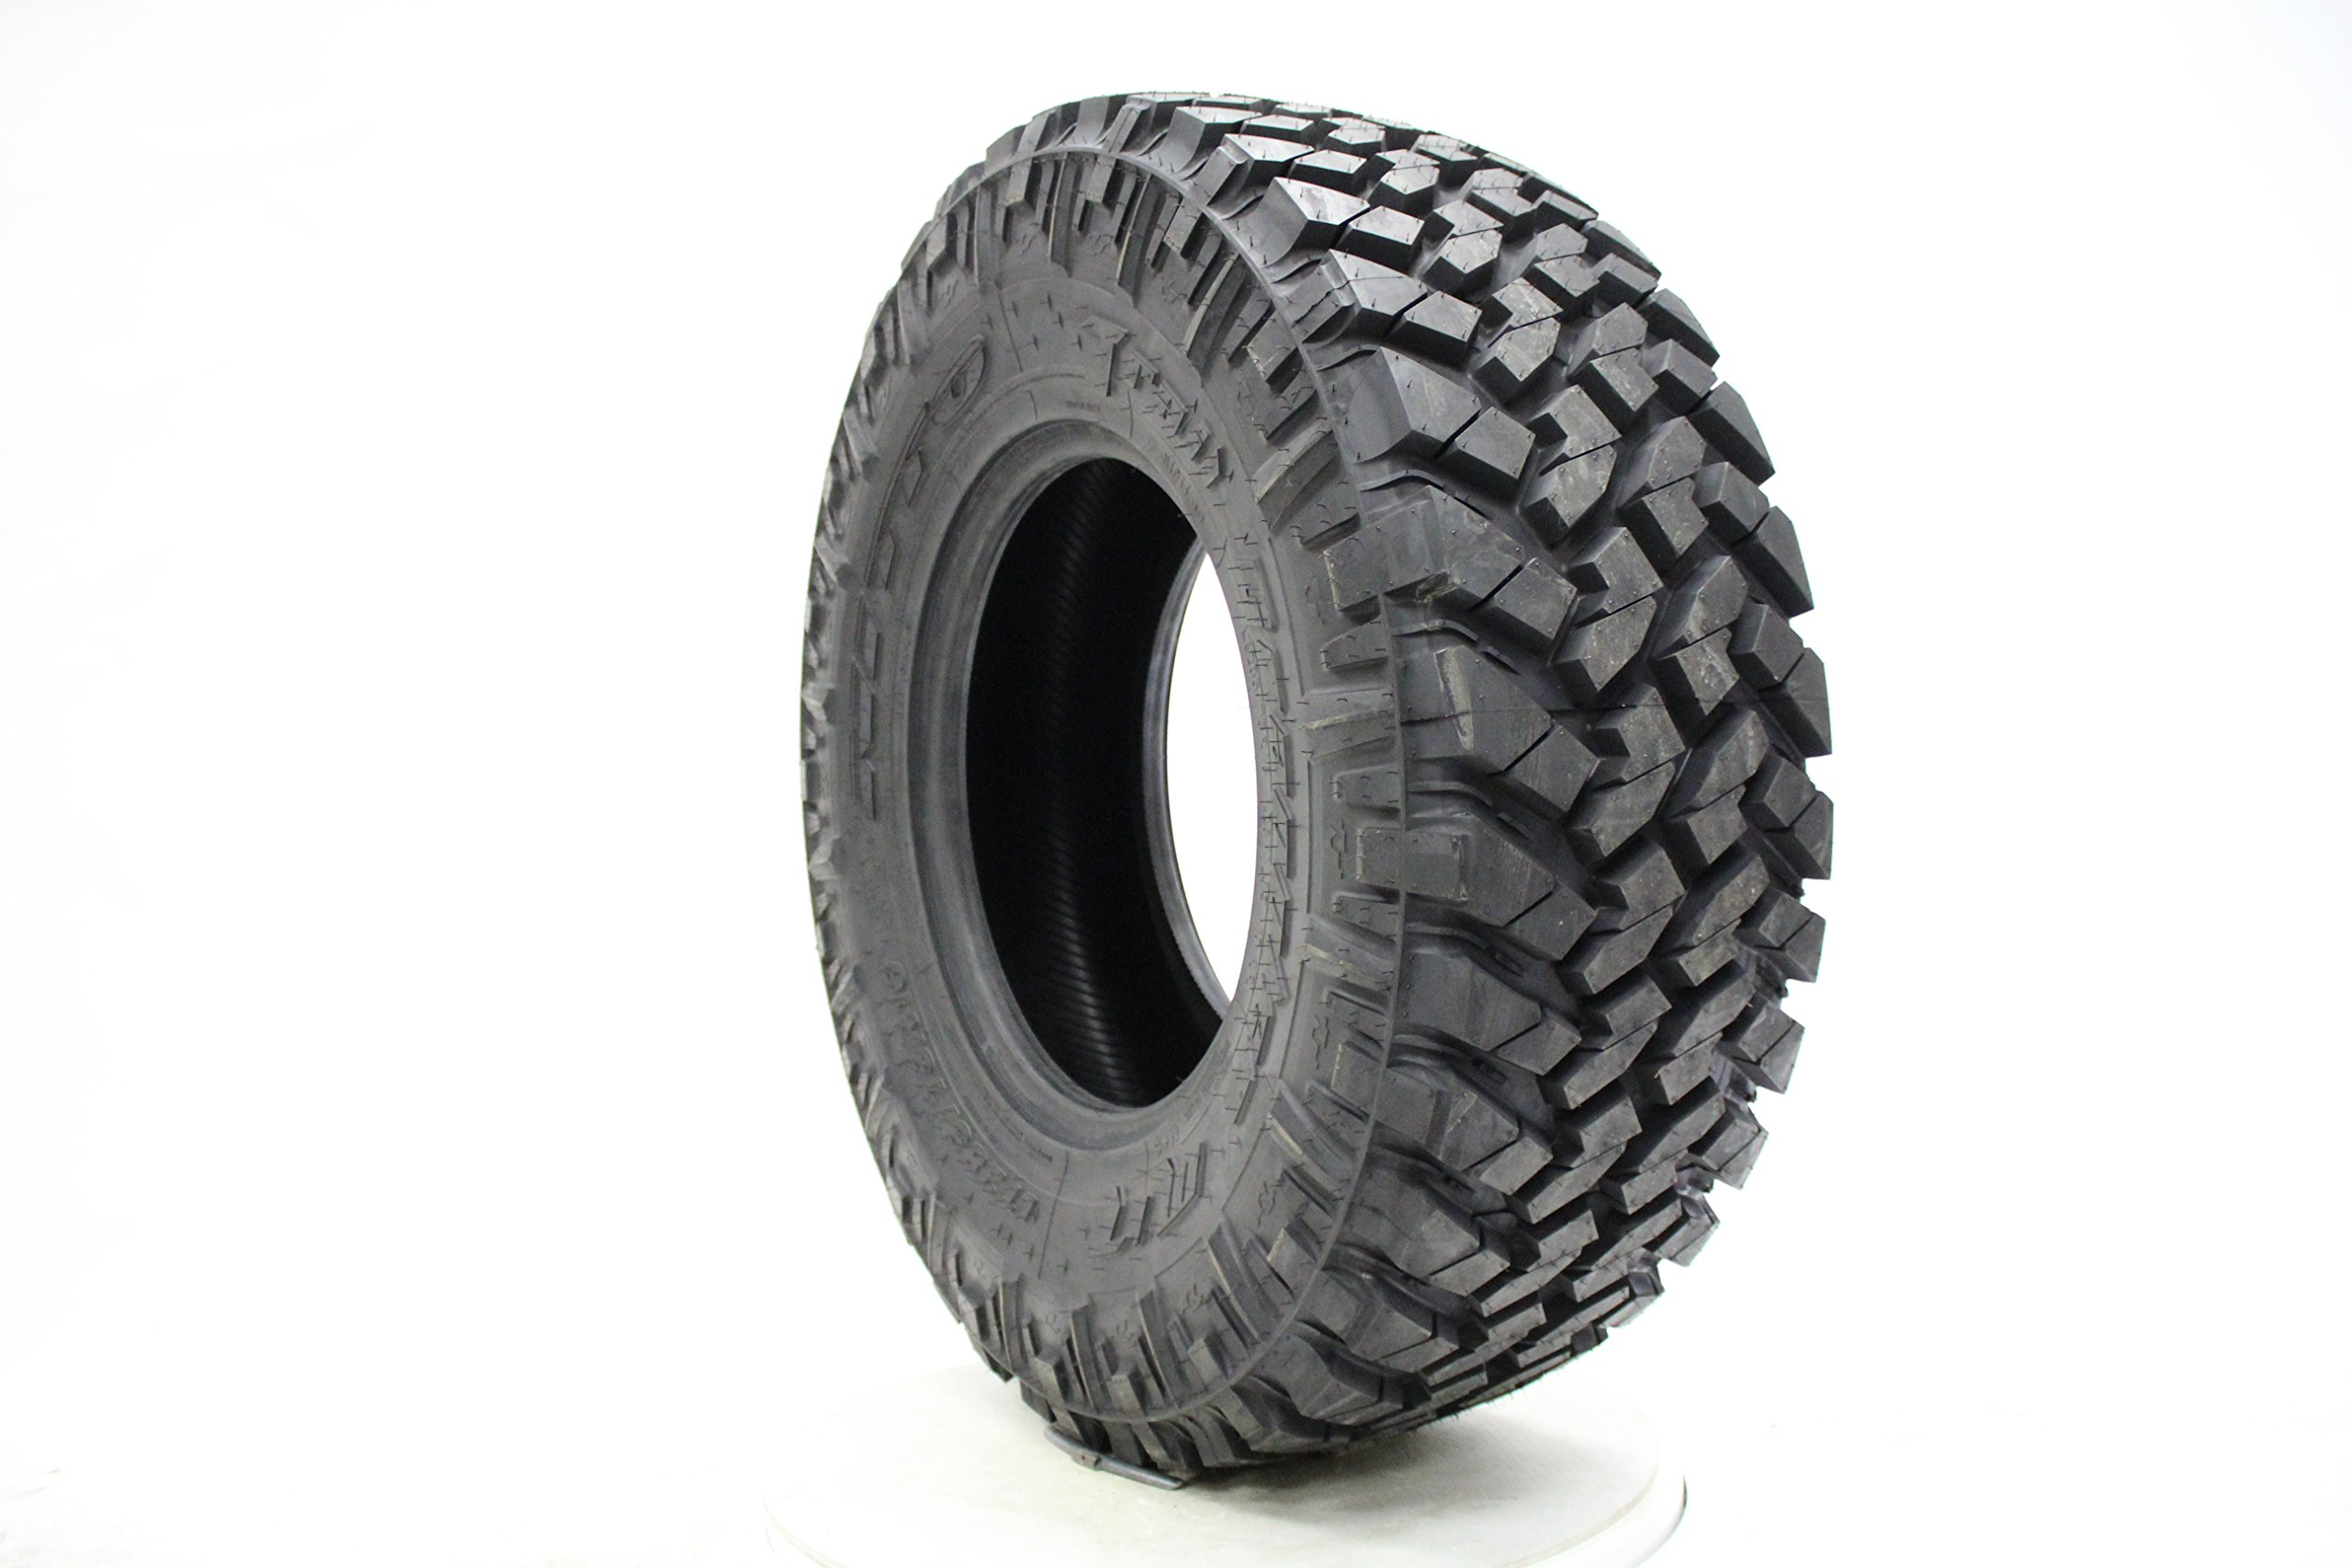 Nitto Trail Grappler M/T All-Terrain Tire – 285/65R18 125Q